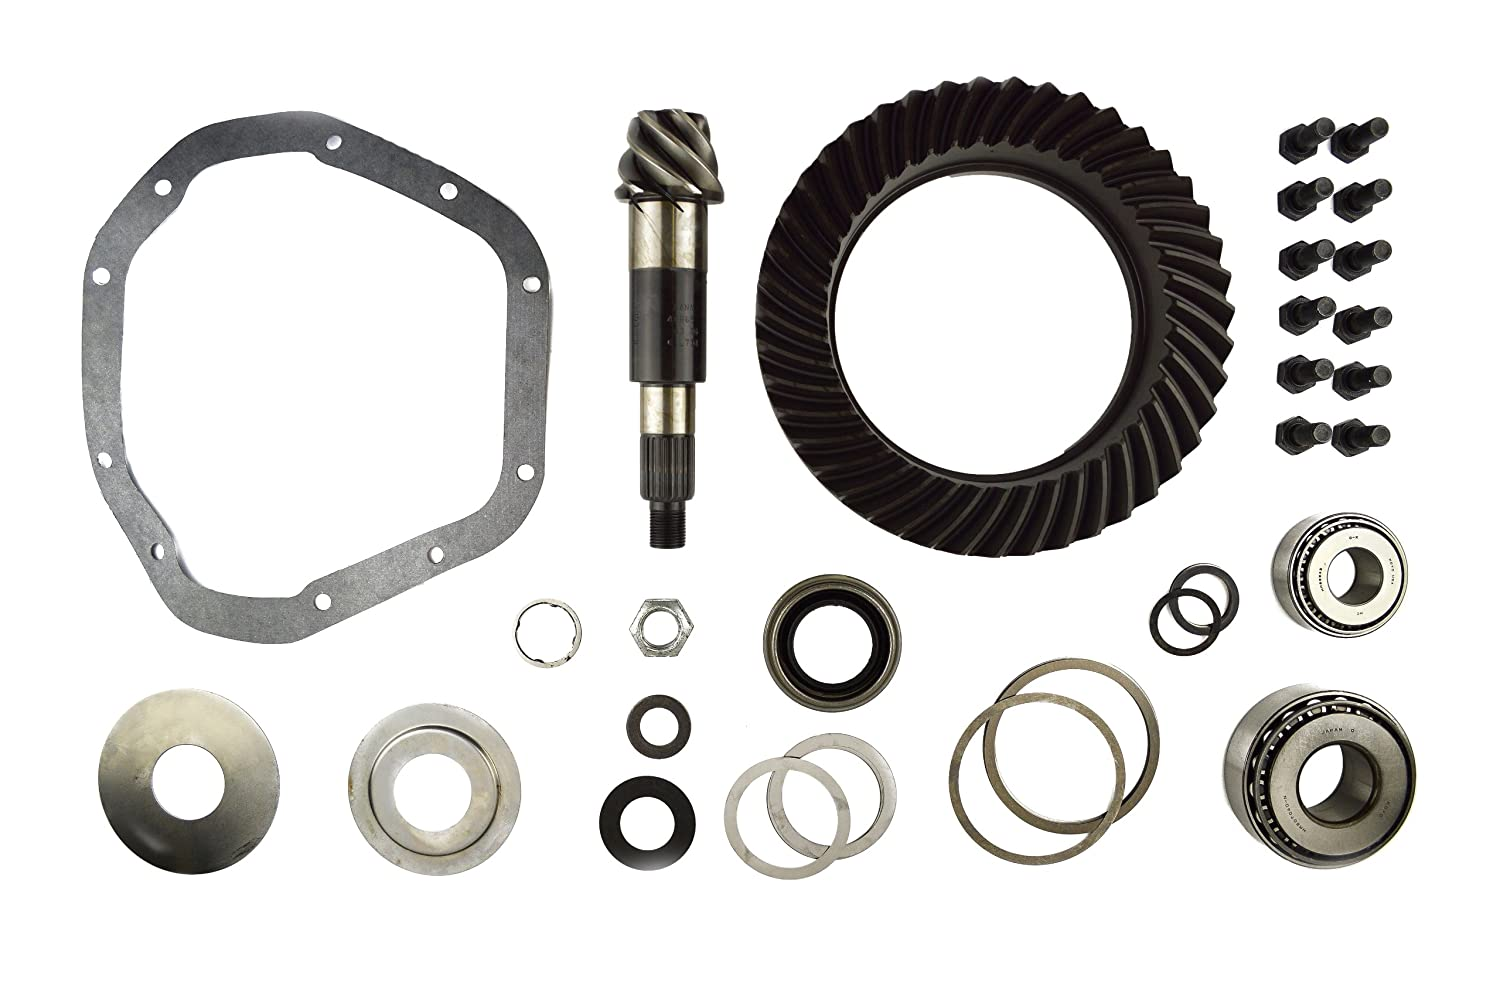 Spicer 706999-15X Ring and Pinion Gear Set